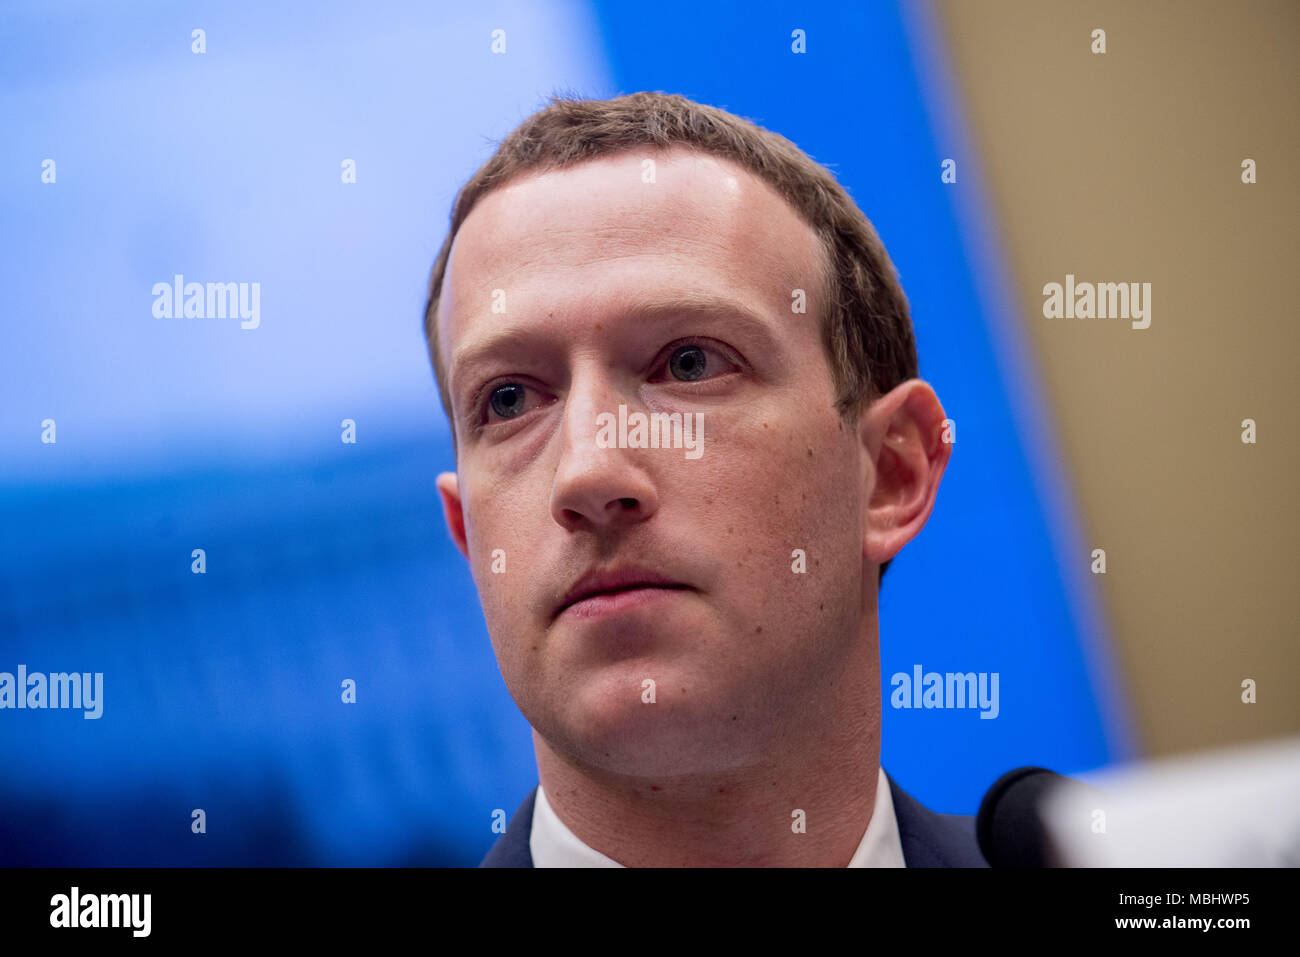 Washington, District of Columbia, USA. 11th Apr, 2018. Facebook CEO Mark Zuckerberg appears before the House Energy and Commerce Committee. Credit: Erin Scott/ZUMA Wire/Alamy Live News Stock Photo